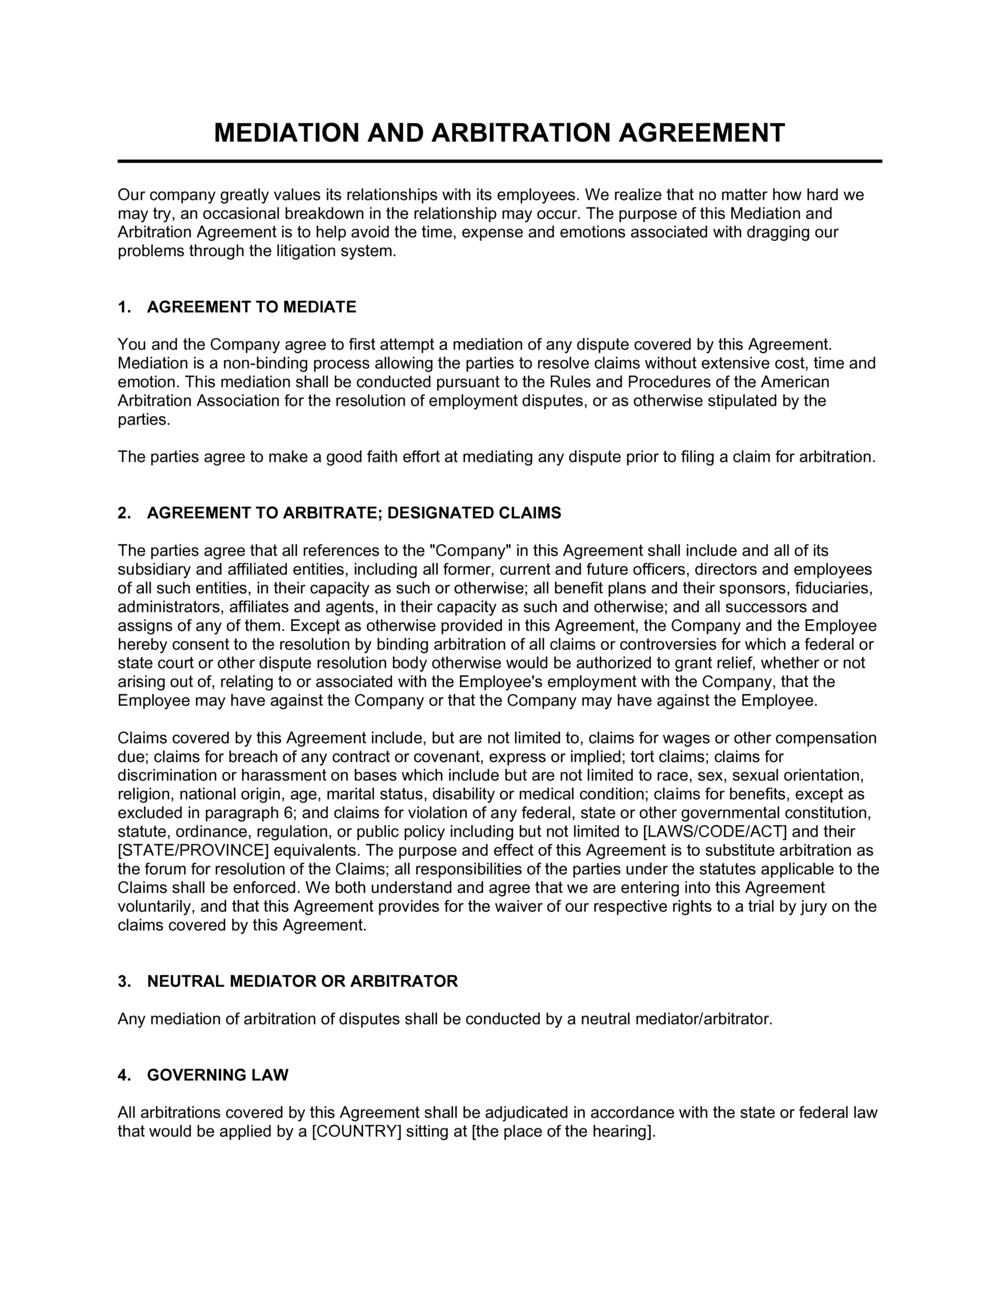 Business-in-a-Box's Mediation and Arbitration Agreement Template